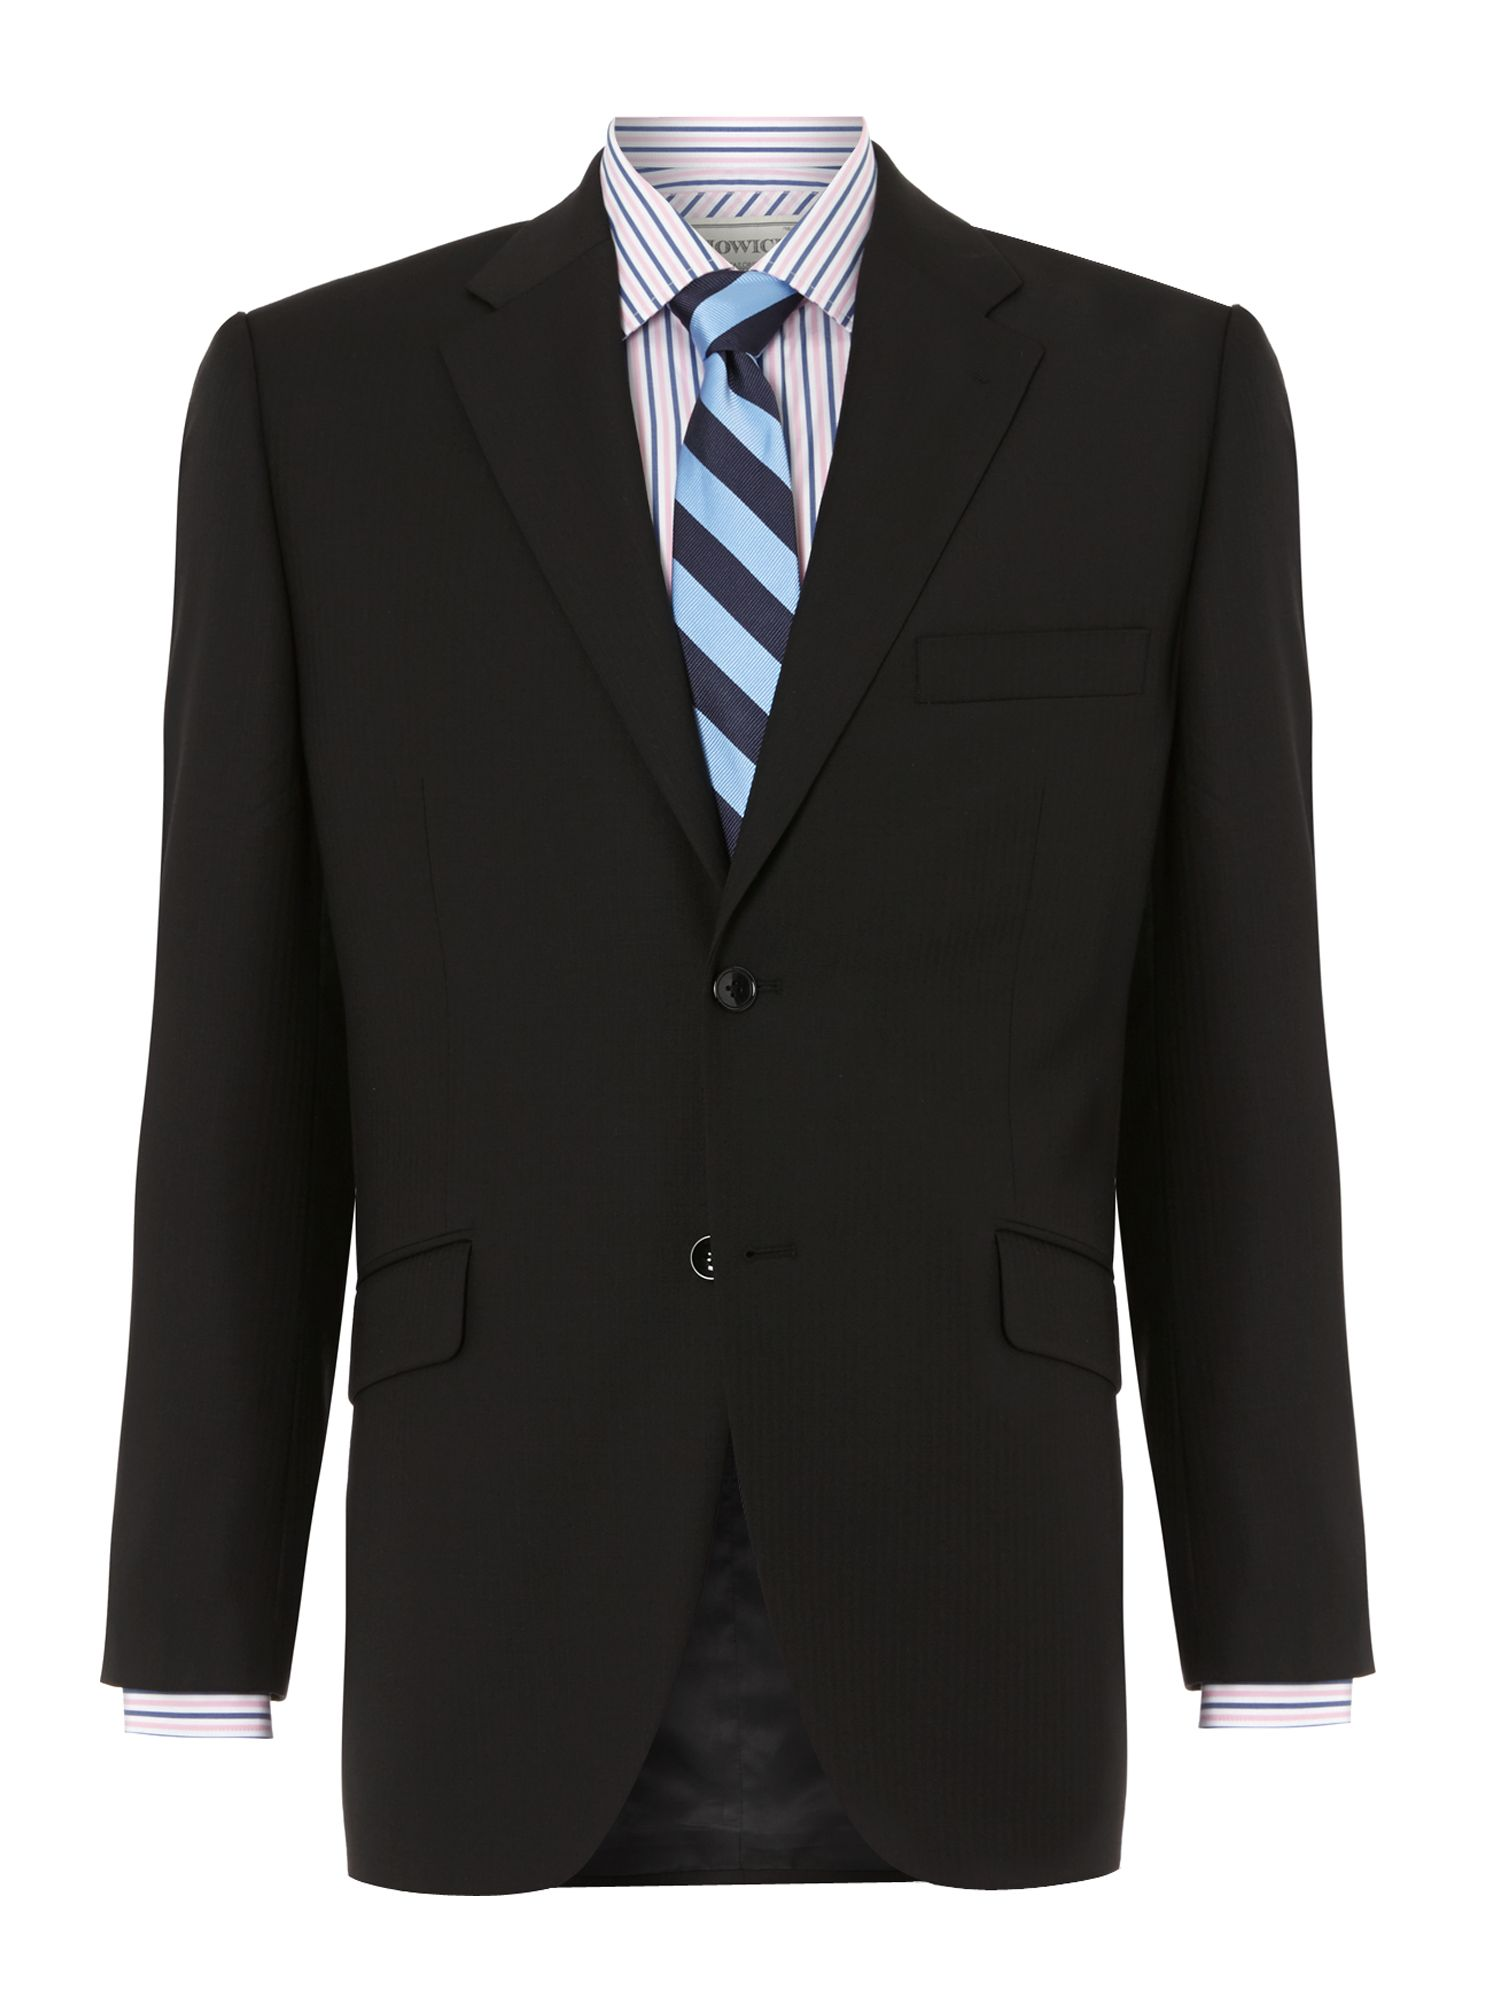 Tuxedos: Free Shipping on orders over $45 at funon.ml - Your Online Formalwear Store! Get 5% in rewards with Club O! Overstock uses cookies to ensure you get the best experience on our site. If you continue on our site, you consent to the use of such cookies.